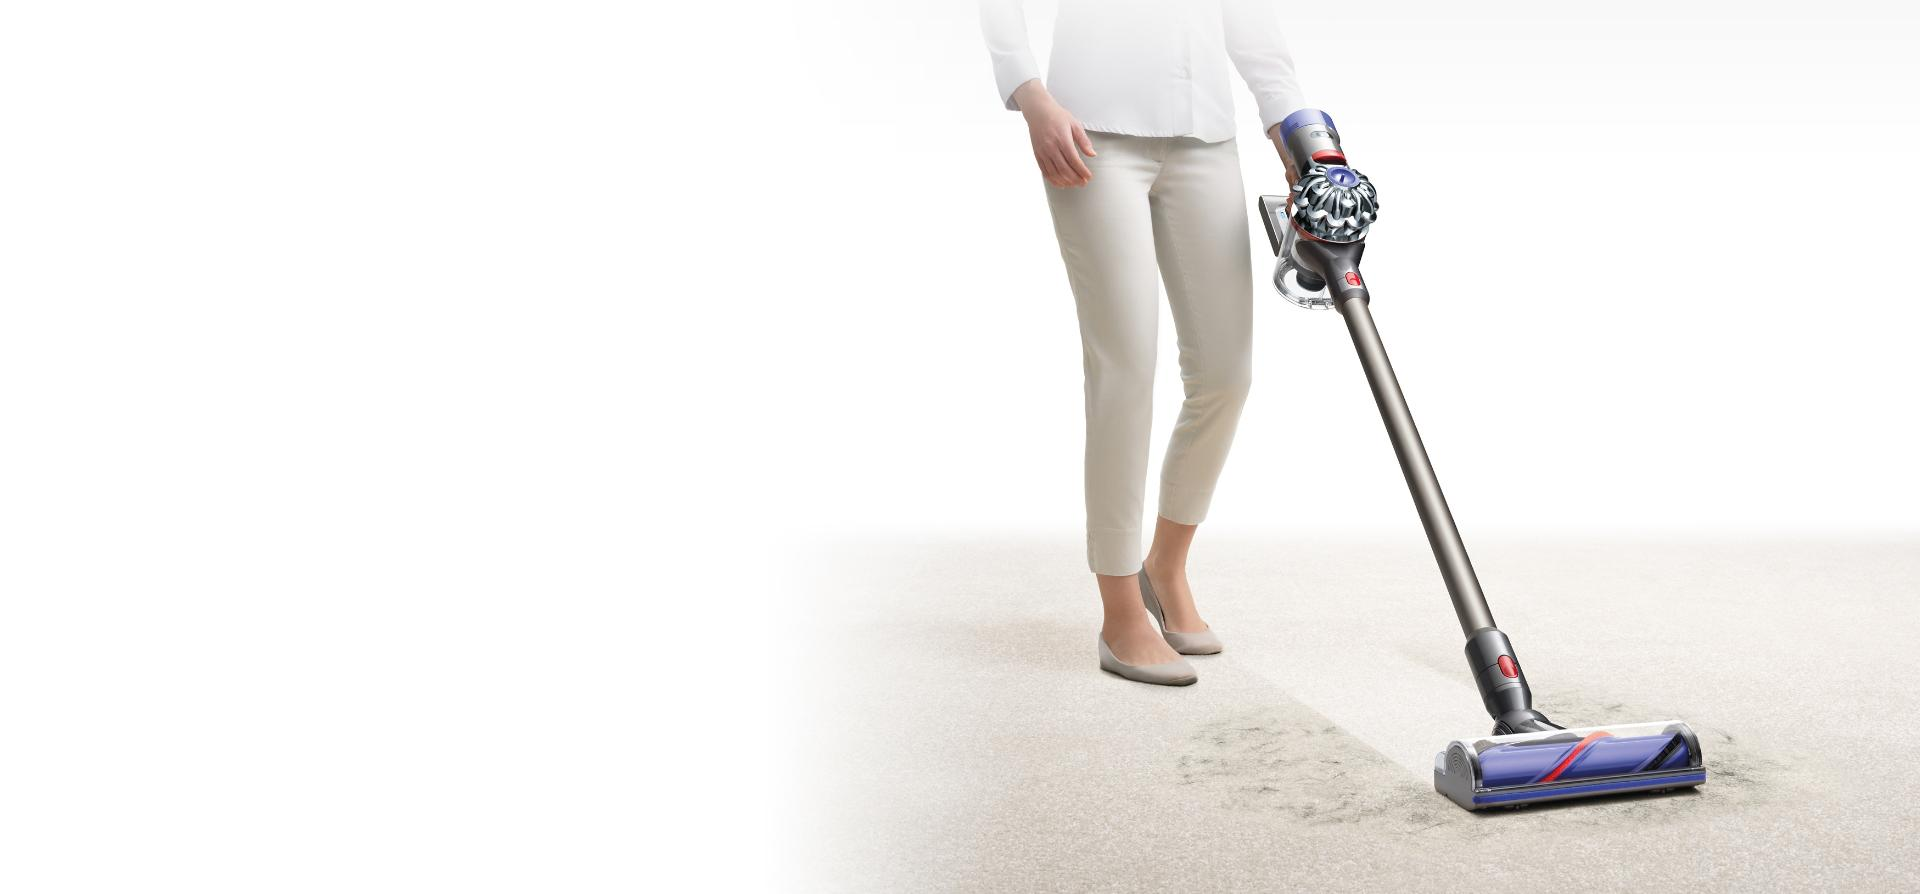 Woman vacuuming carpet with Dyson cord-free V8 vacuum cleaner